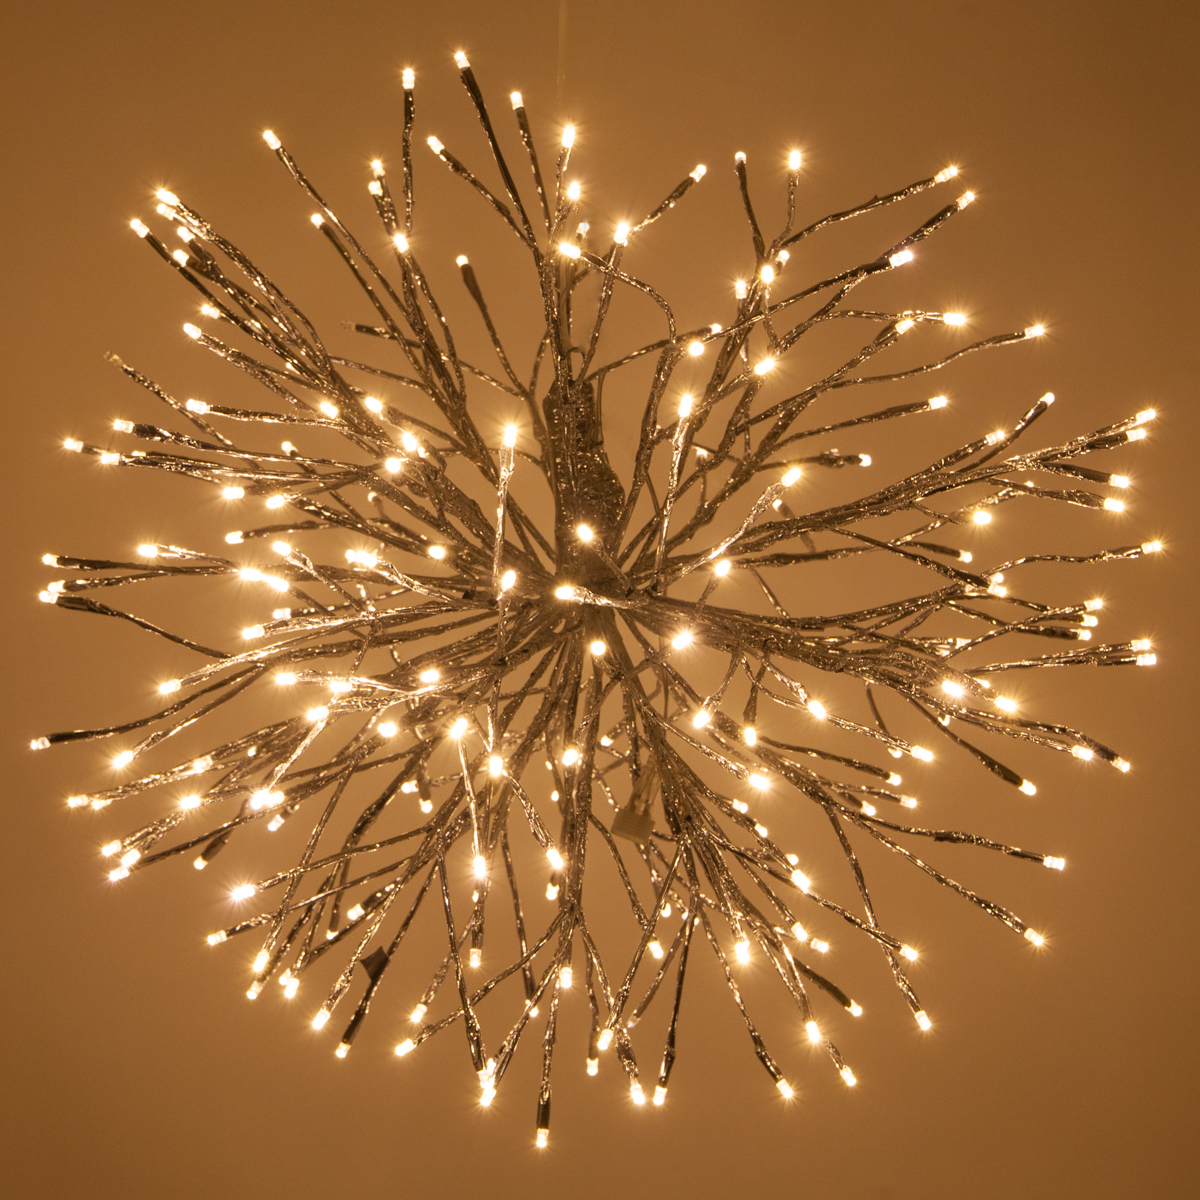 Starburst Lighted Branches